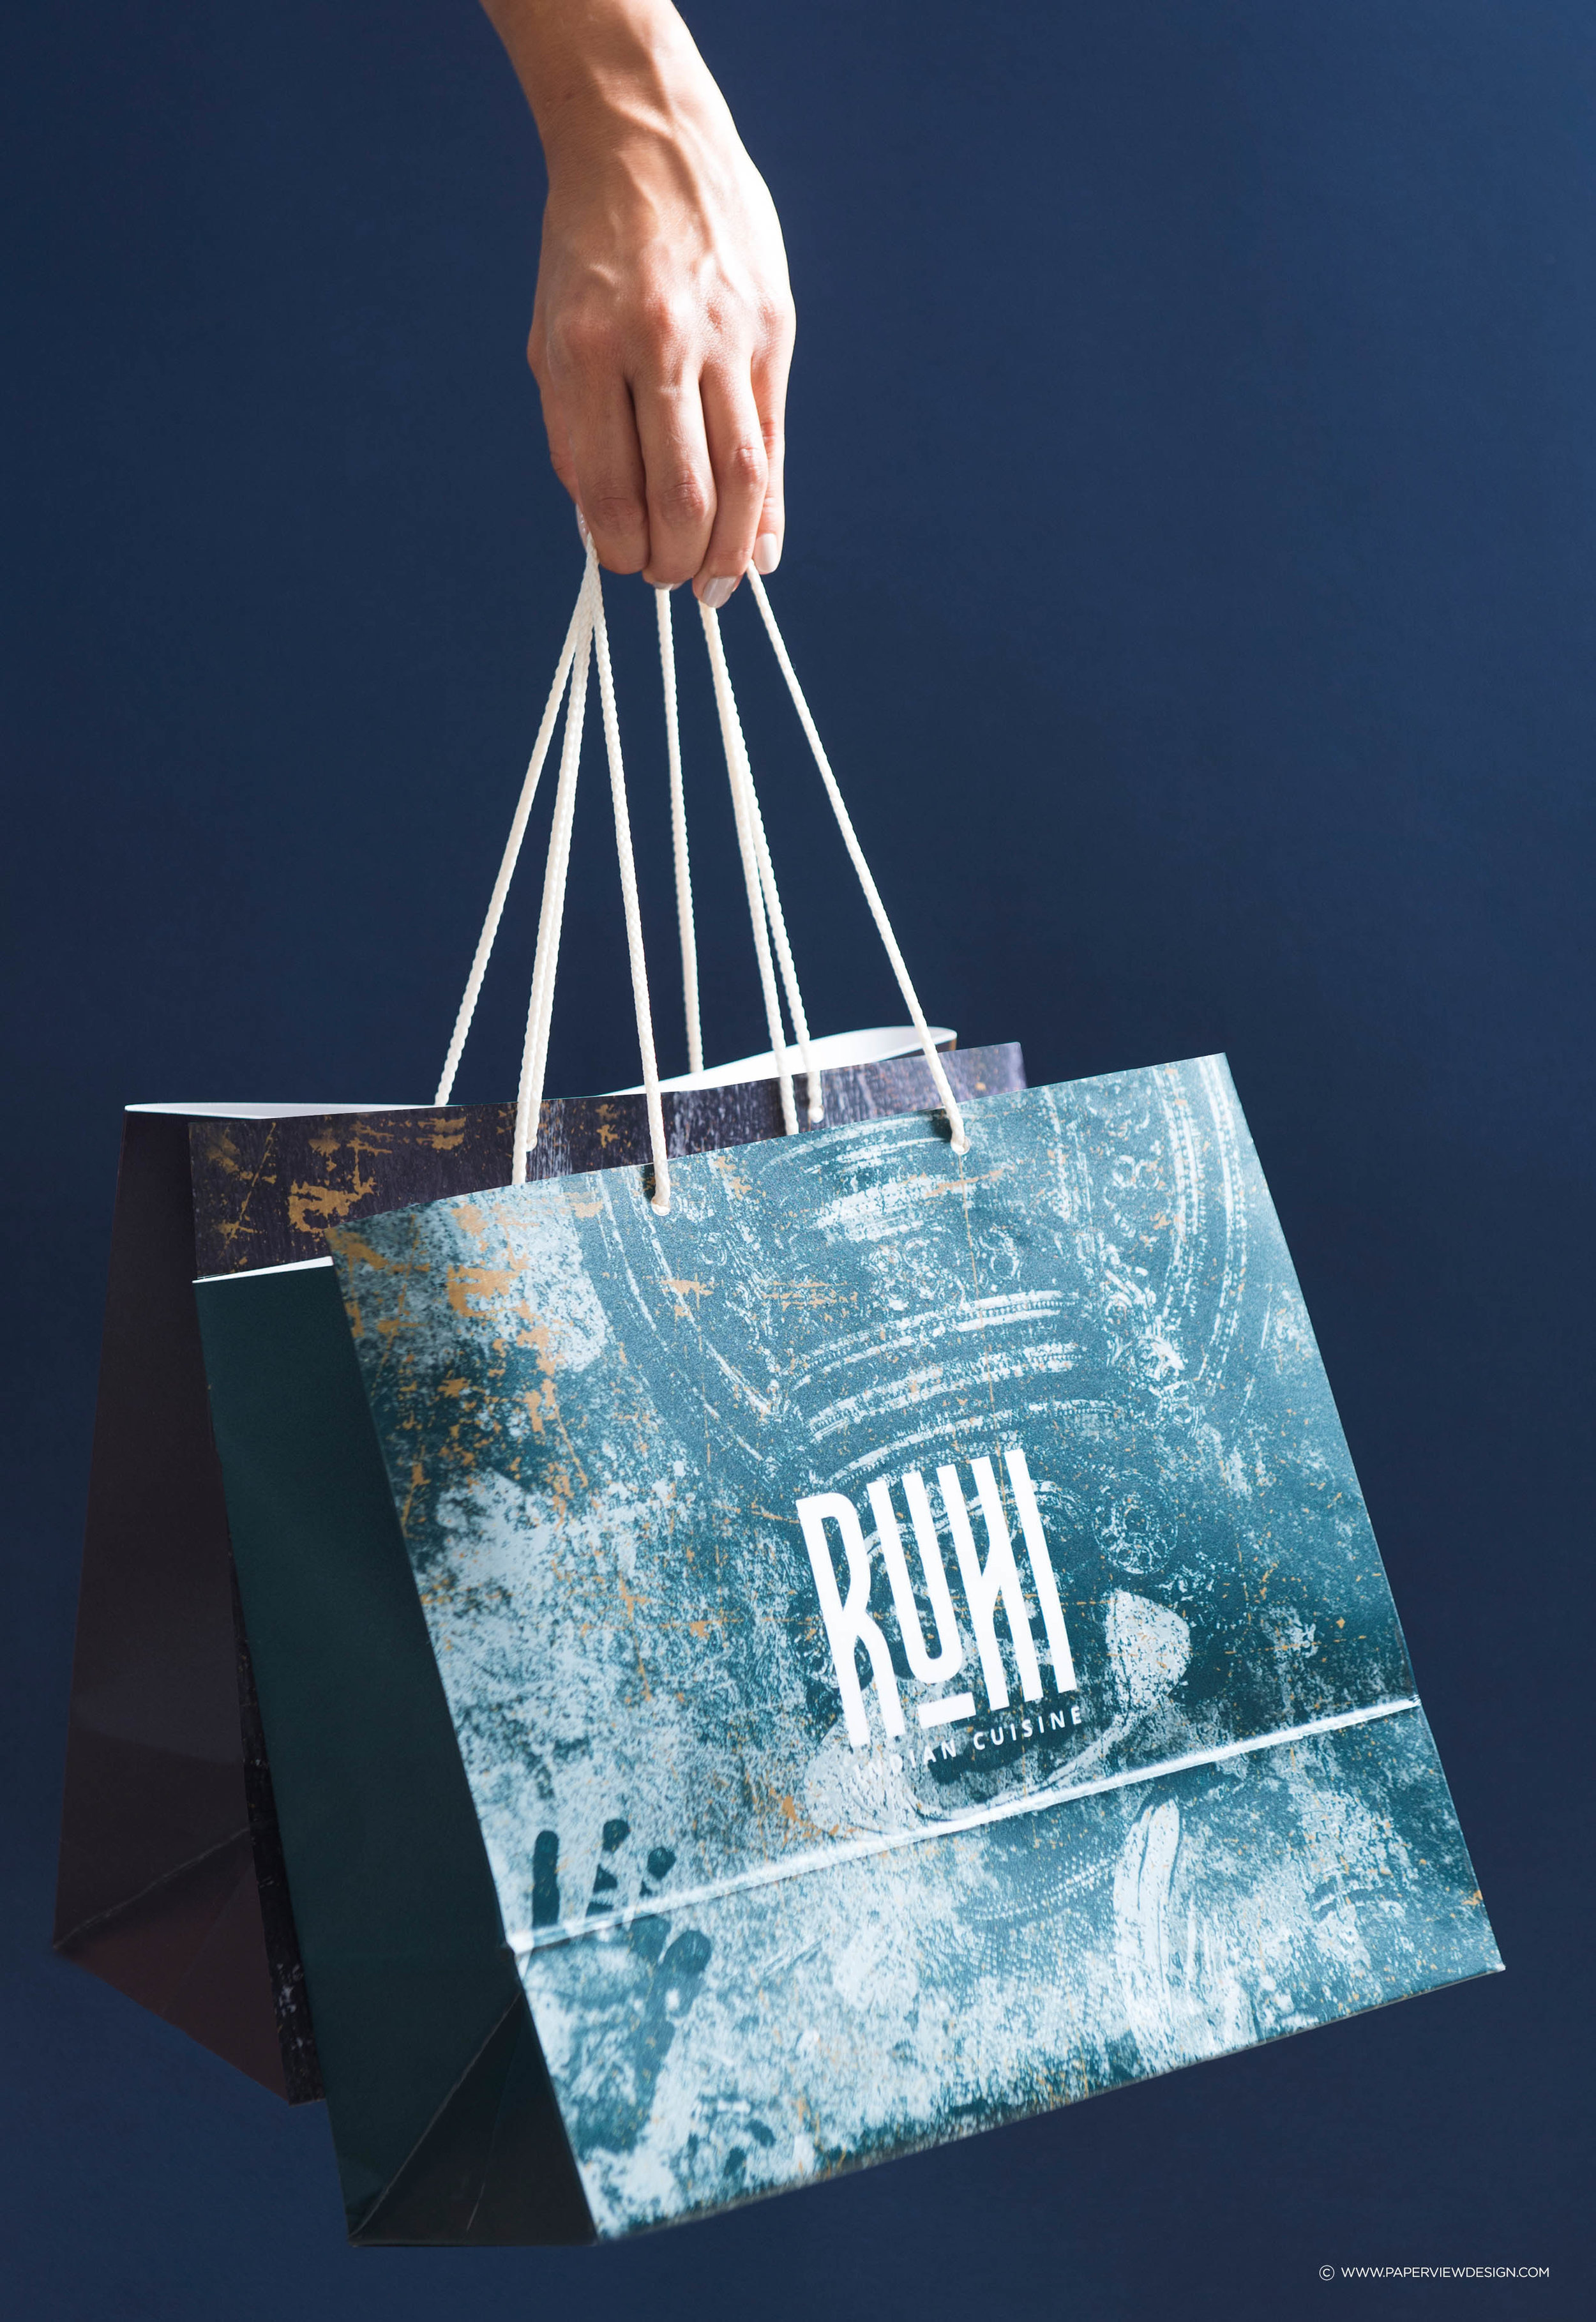 Ruhi-KSA-Indian-Restaurant-Cuisine-Identity-Branding-Takeaway-Bag-Delivery